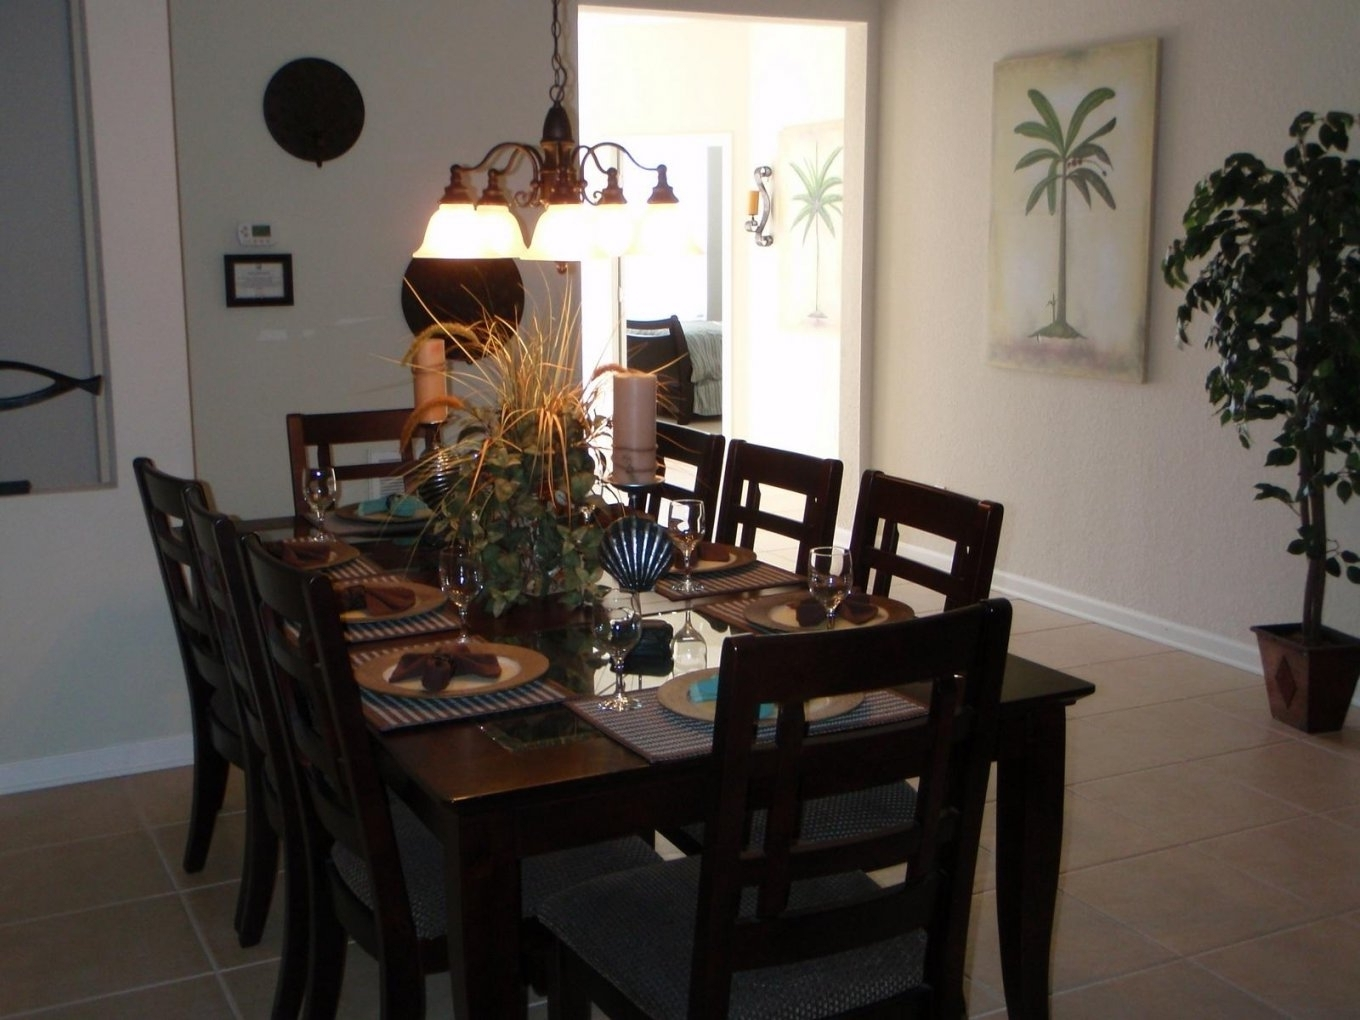 Widely Used Cheap 8 Seater Dining Tables In Charming Ideas 8 Seat Dining Table Set Homey Idea Seater Dining With (View 15 of 25)